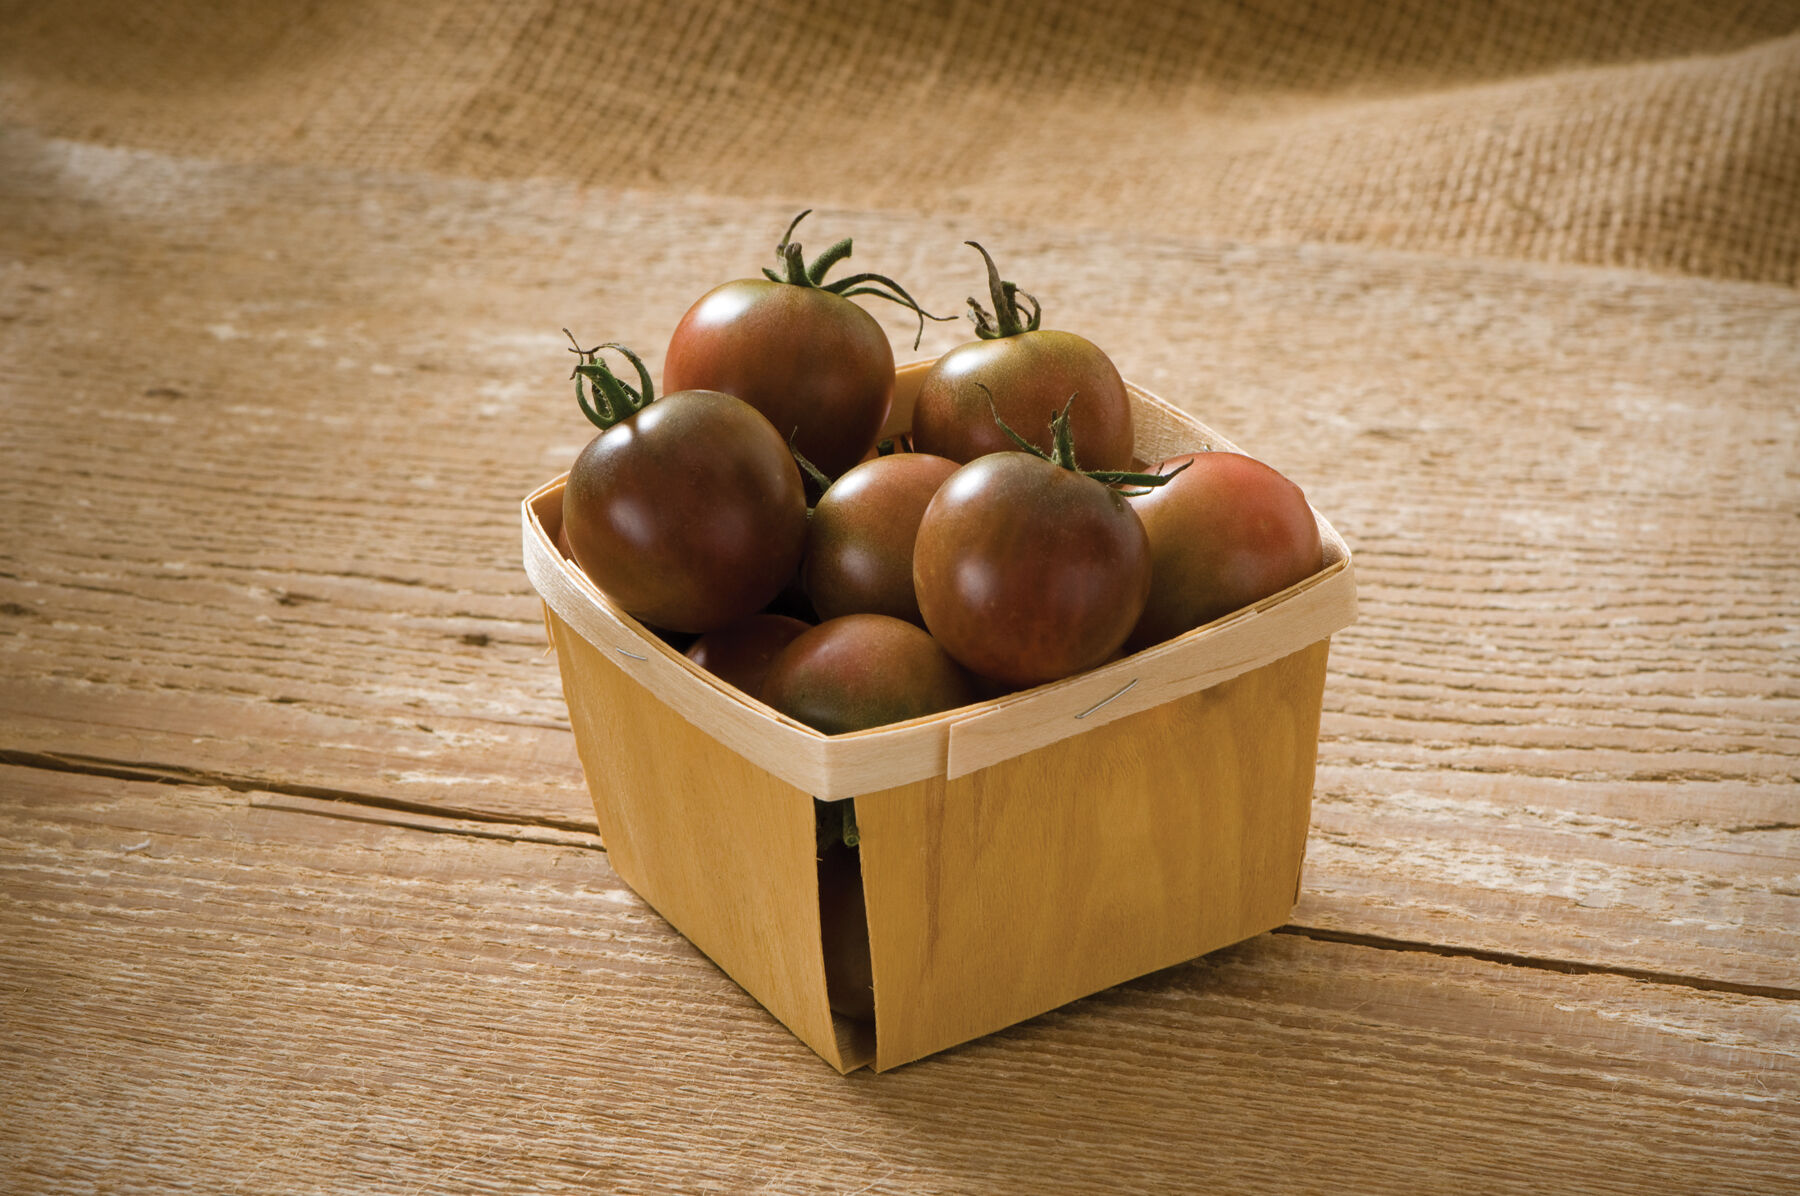 Compelling Black Cherry Cherry Tomatoes View Image Black Cherry Organic Tomato Seed Selected Seeds Black Cherry Tomato Taste Black Cherry Tomato Heirloom houzz 01 Black Cherry Tomato